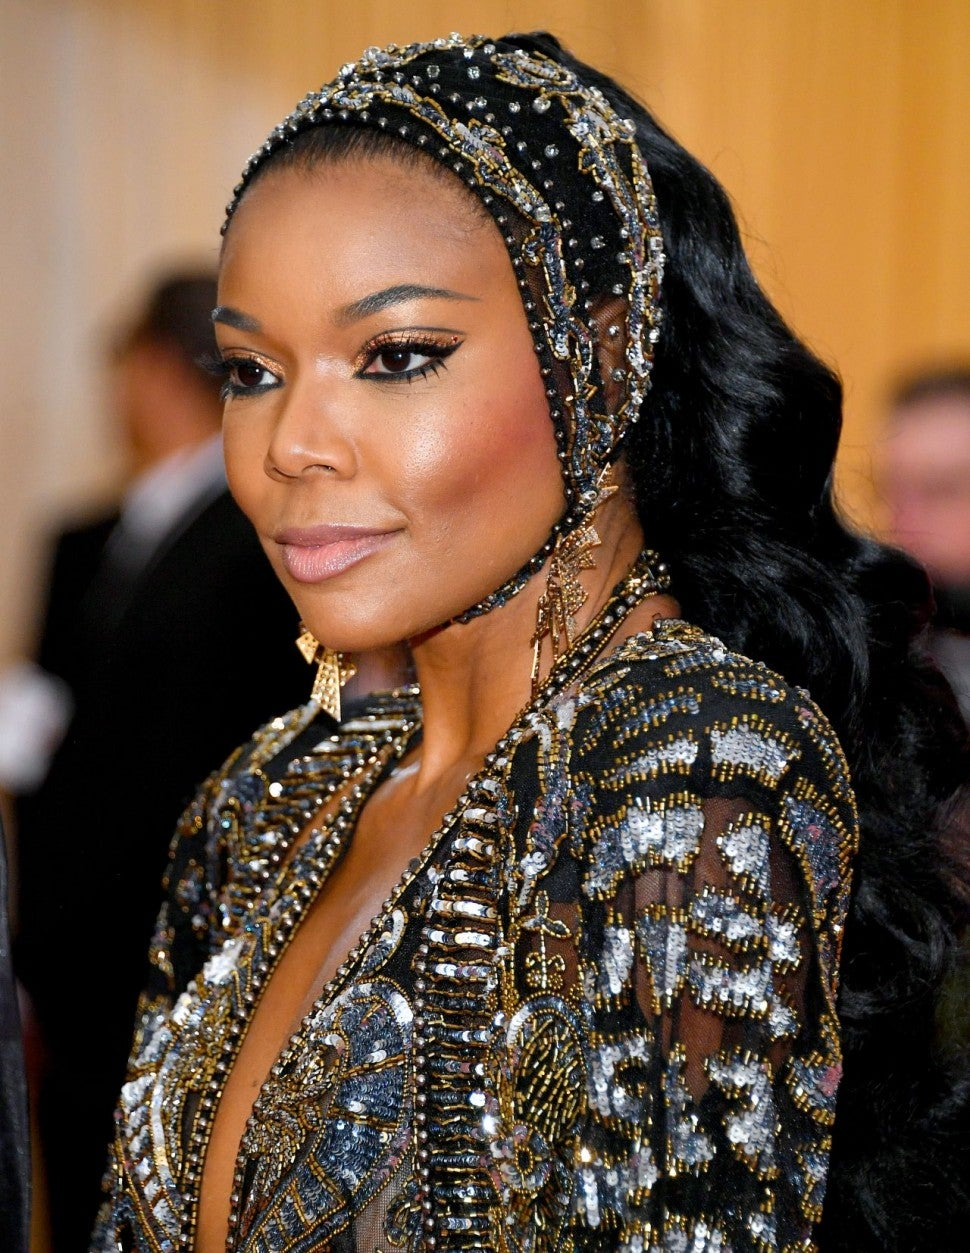 Gabrielle Union at 2019 Met Gala